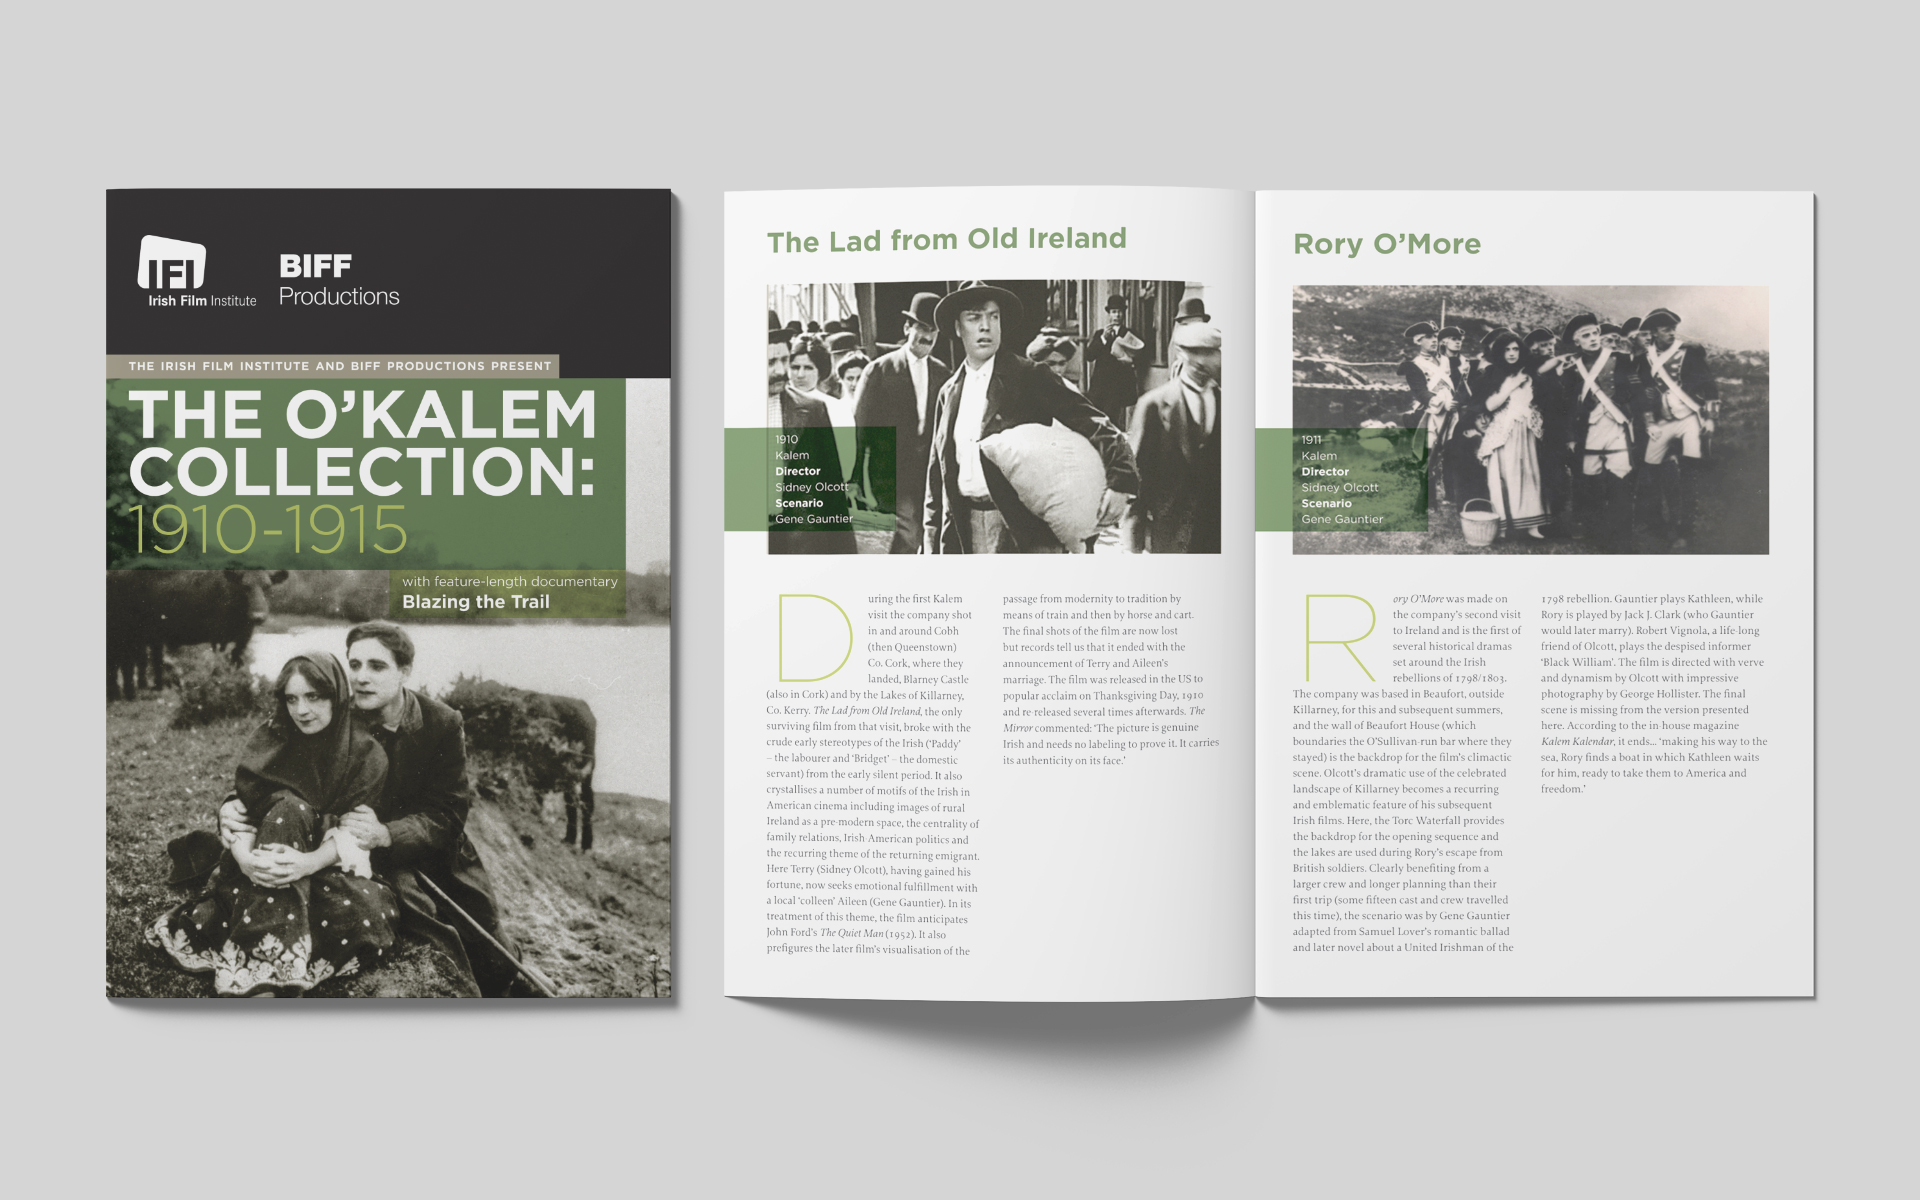 IFI Irish Film Archive O'Kalem Collection DVD package design